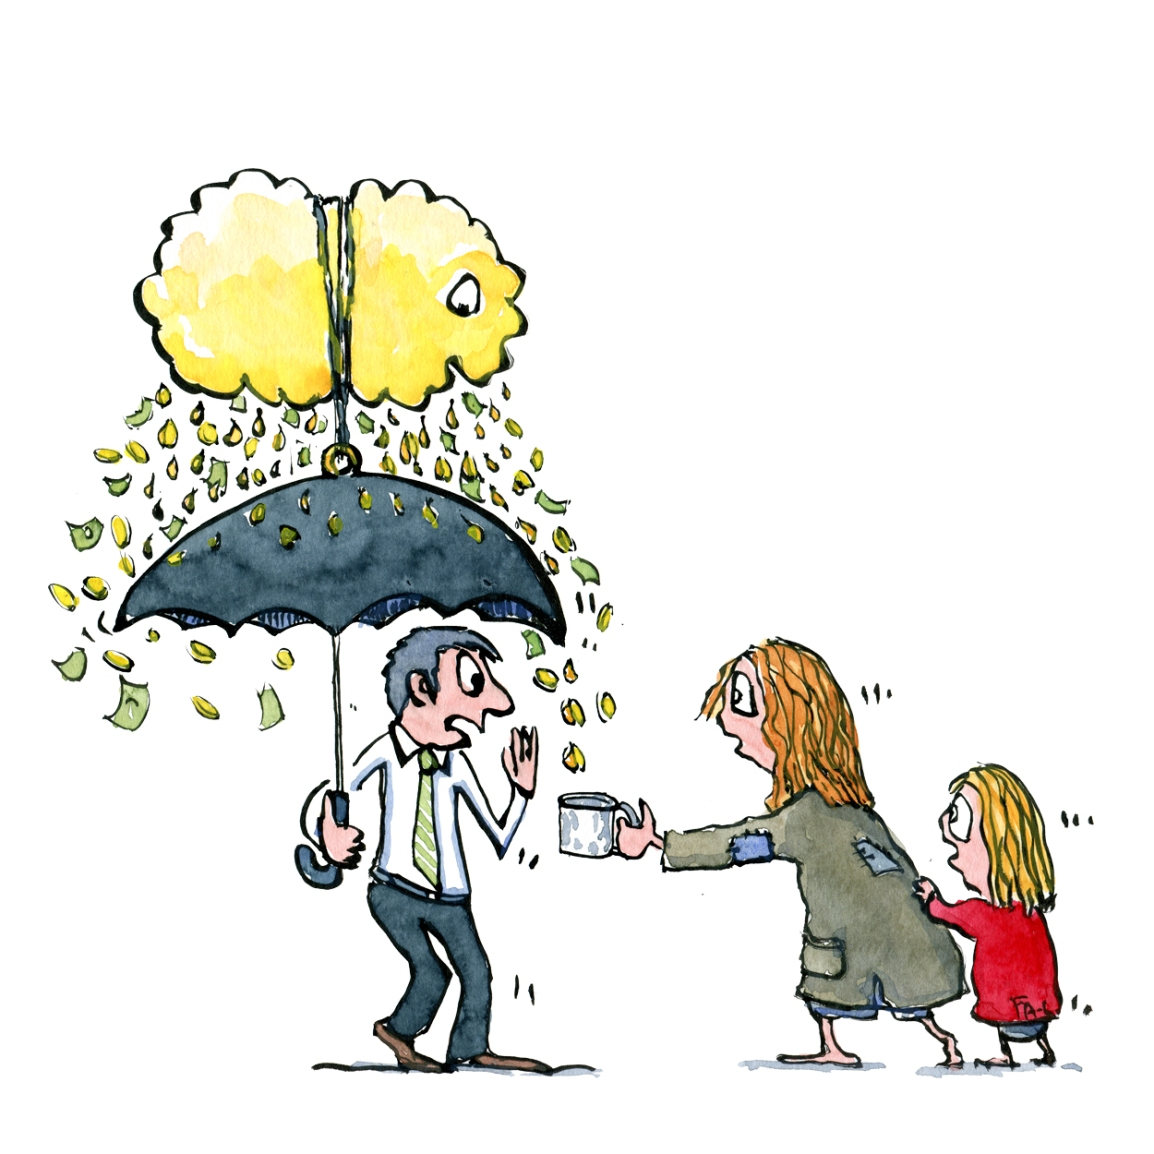 Drawing of a businessman with a tied up golden cloud over his umbrella, raining down money, dripping out to the poor